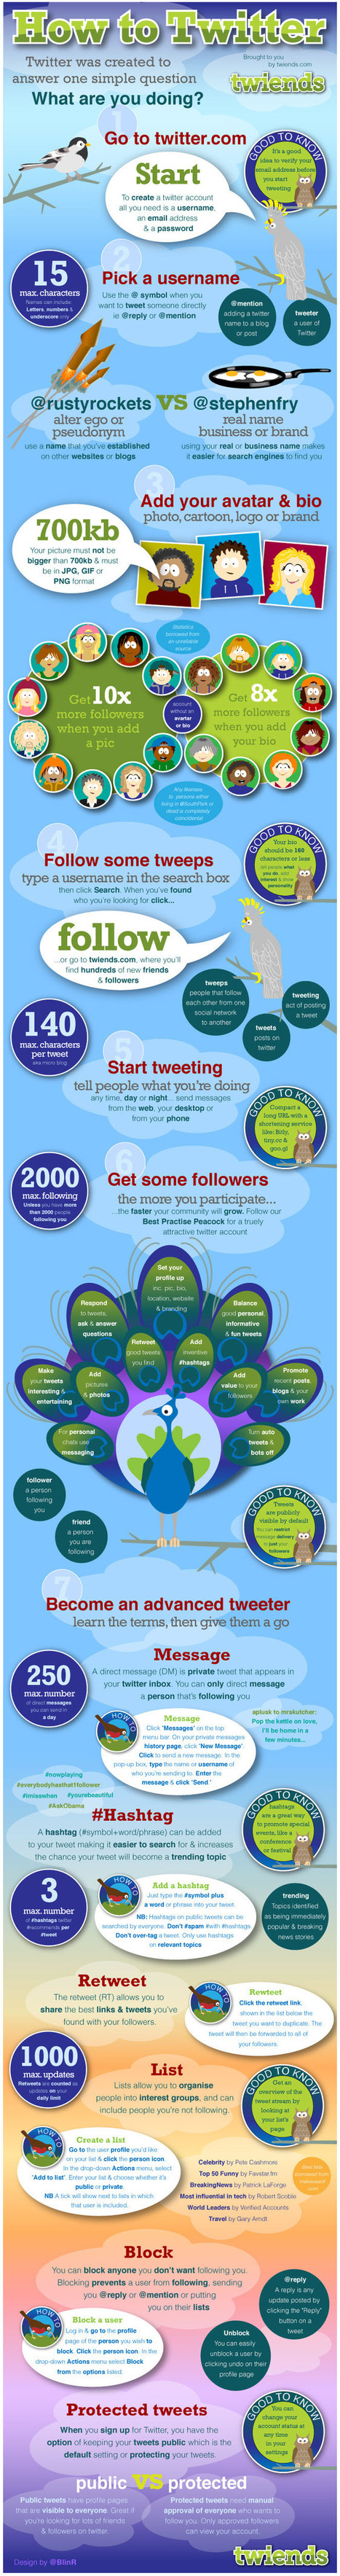 A Visual Guide To Twitter For Beginners - Edudemic | Wiki_Universe | Scoop.it